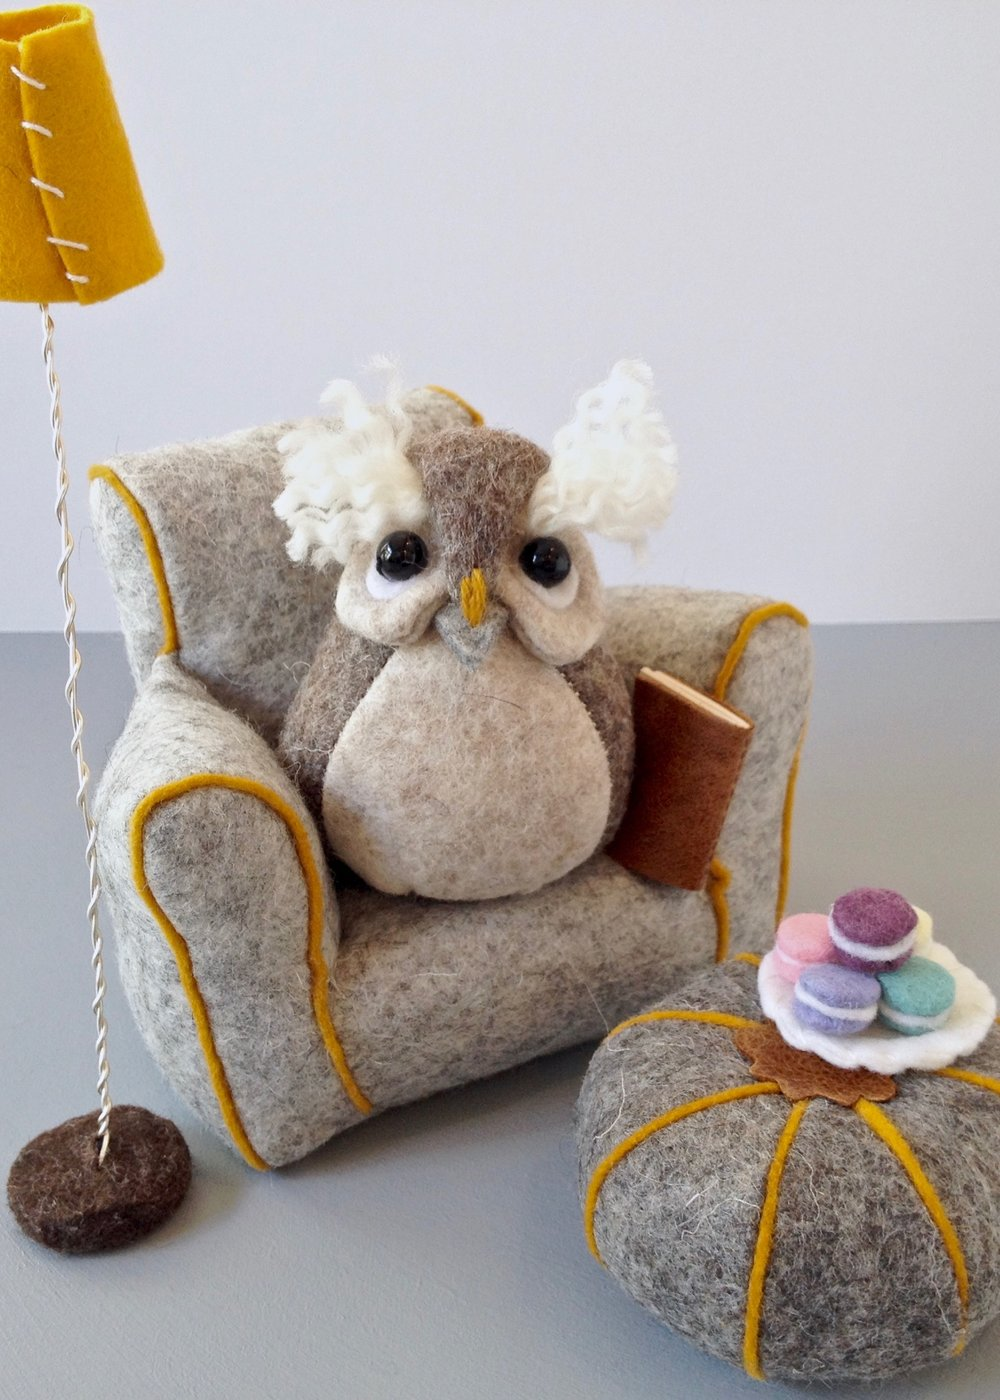 Felt miniature furniture | miniature yellow lamp | grey felt armchair and pumpkin pouffe | Bilberry Woods character Ollie the Owl sitting on a felt armchair with a leather notebook and felt macarons | Handmade by Laura Mirjami.jpg